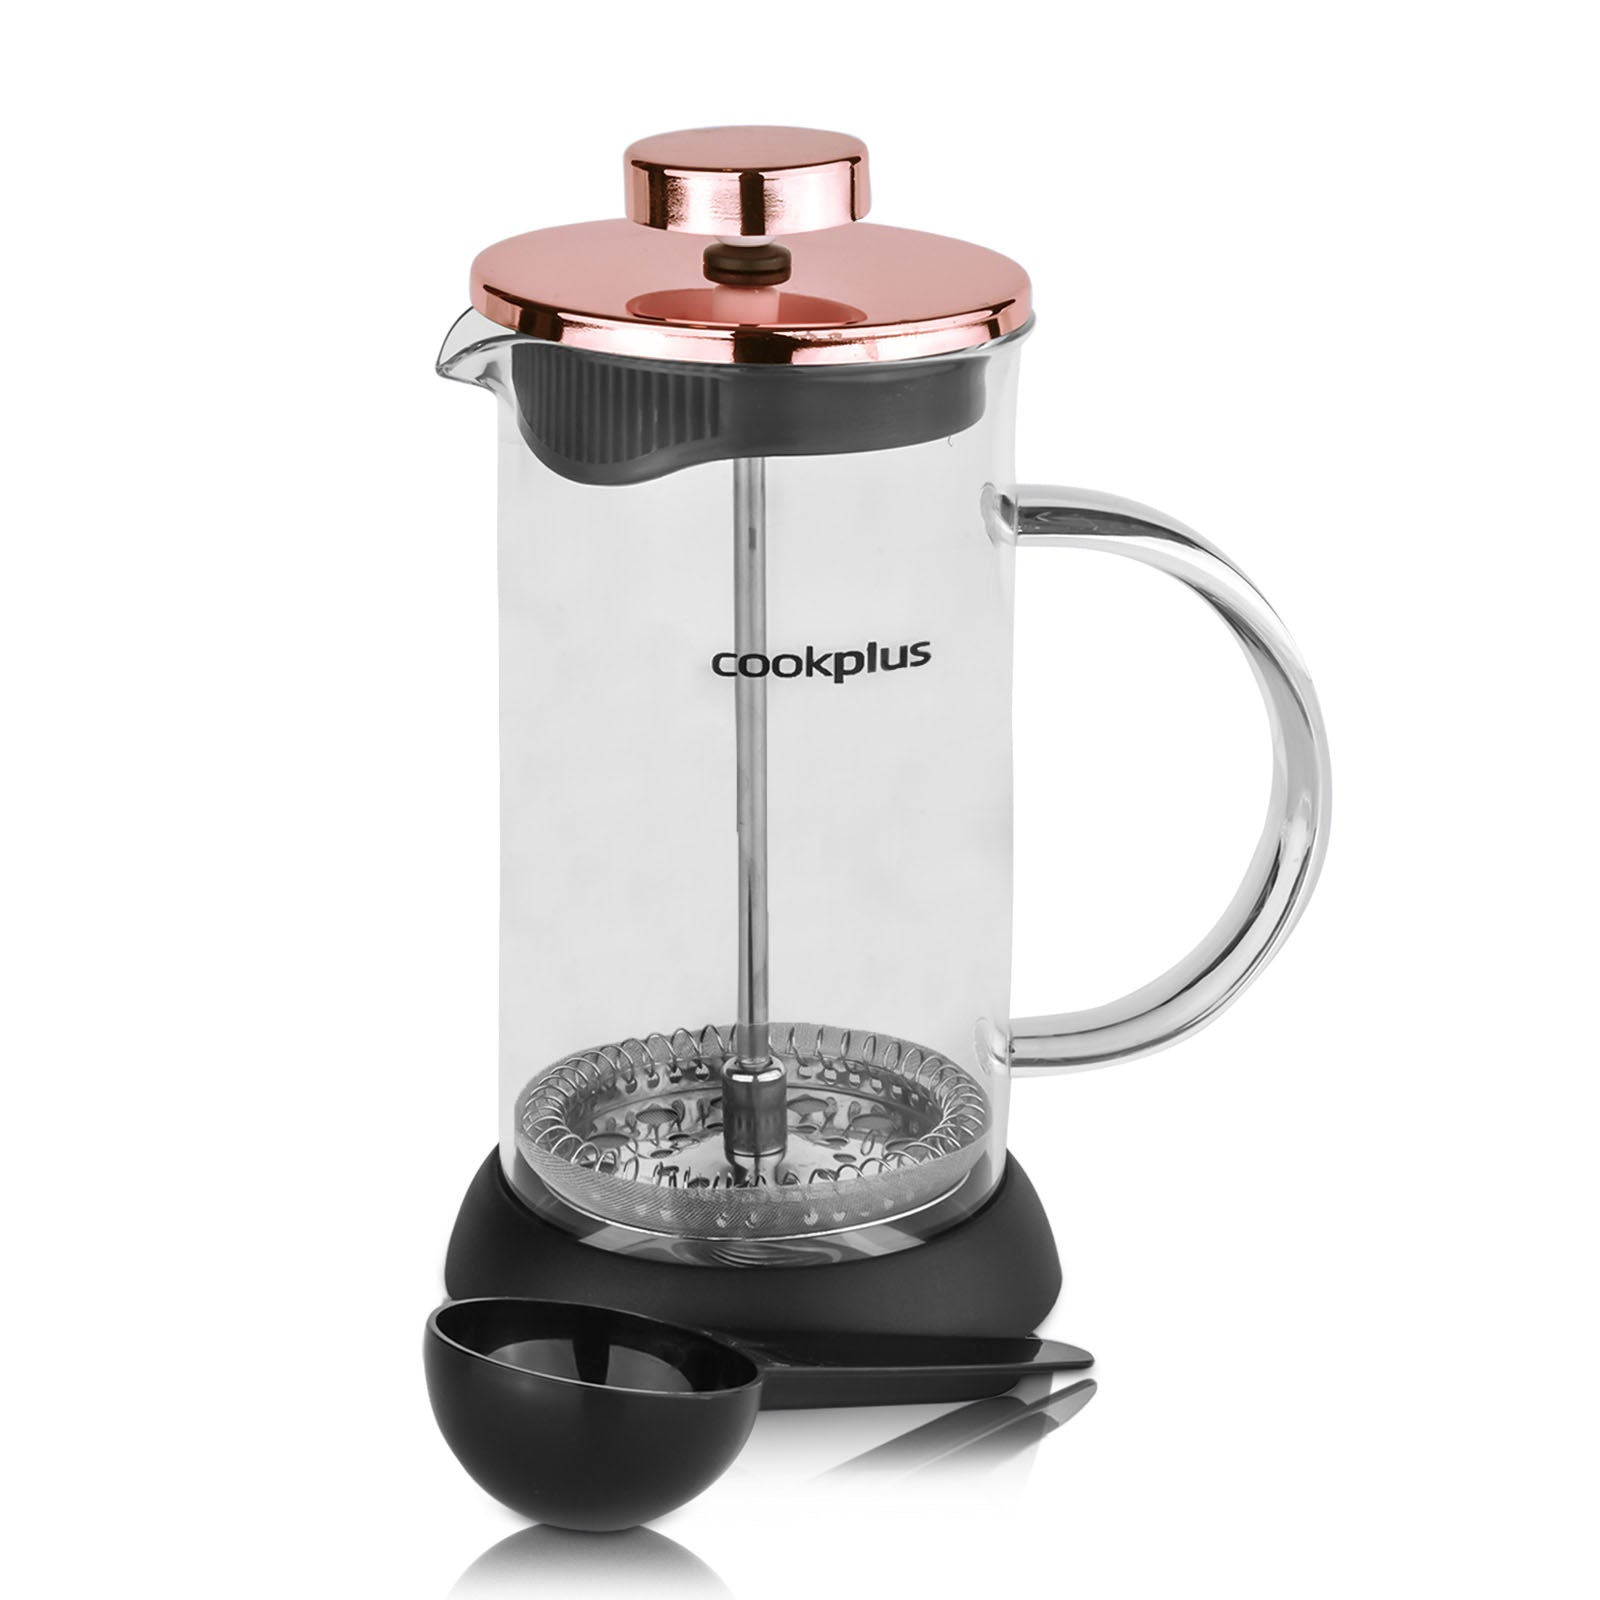 Cookplus Coffee Bean French Bronz Press 350 Ml 153.01.05.3812 - ebarza